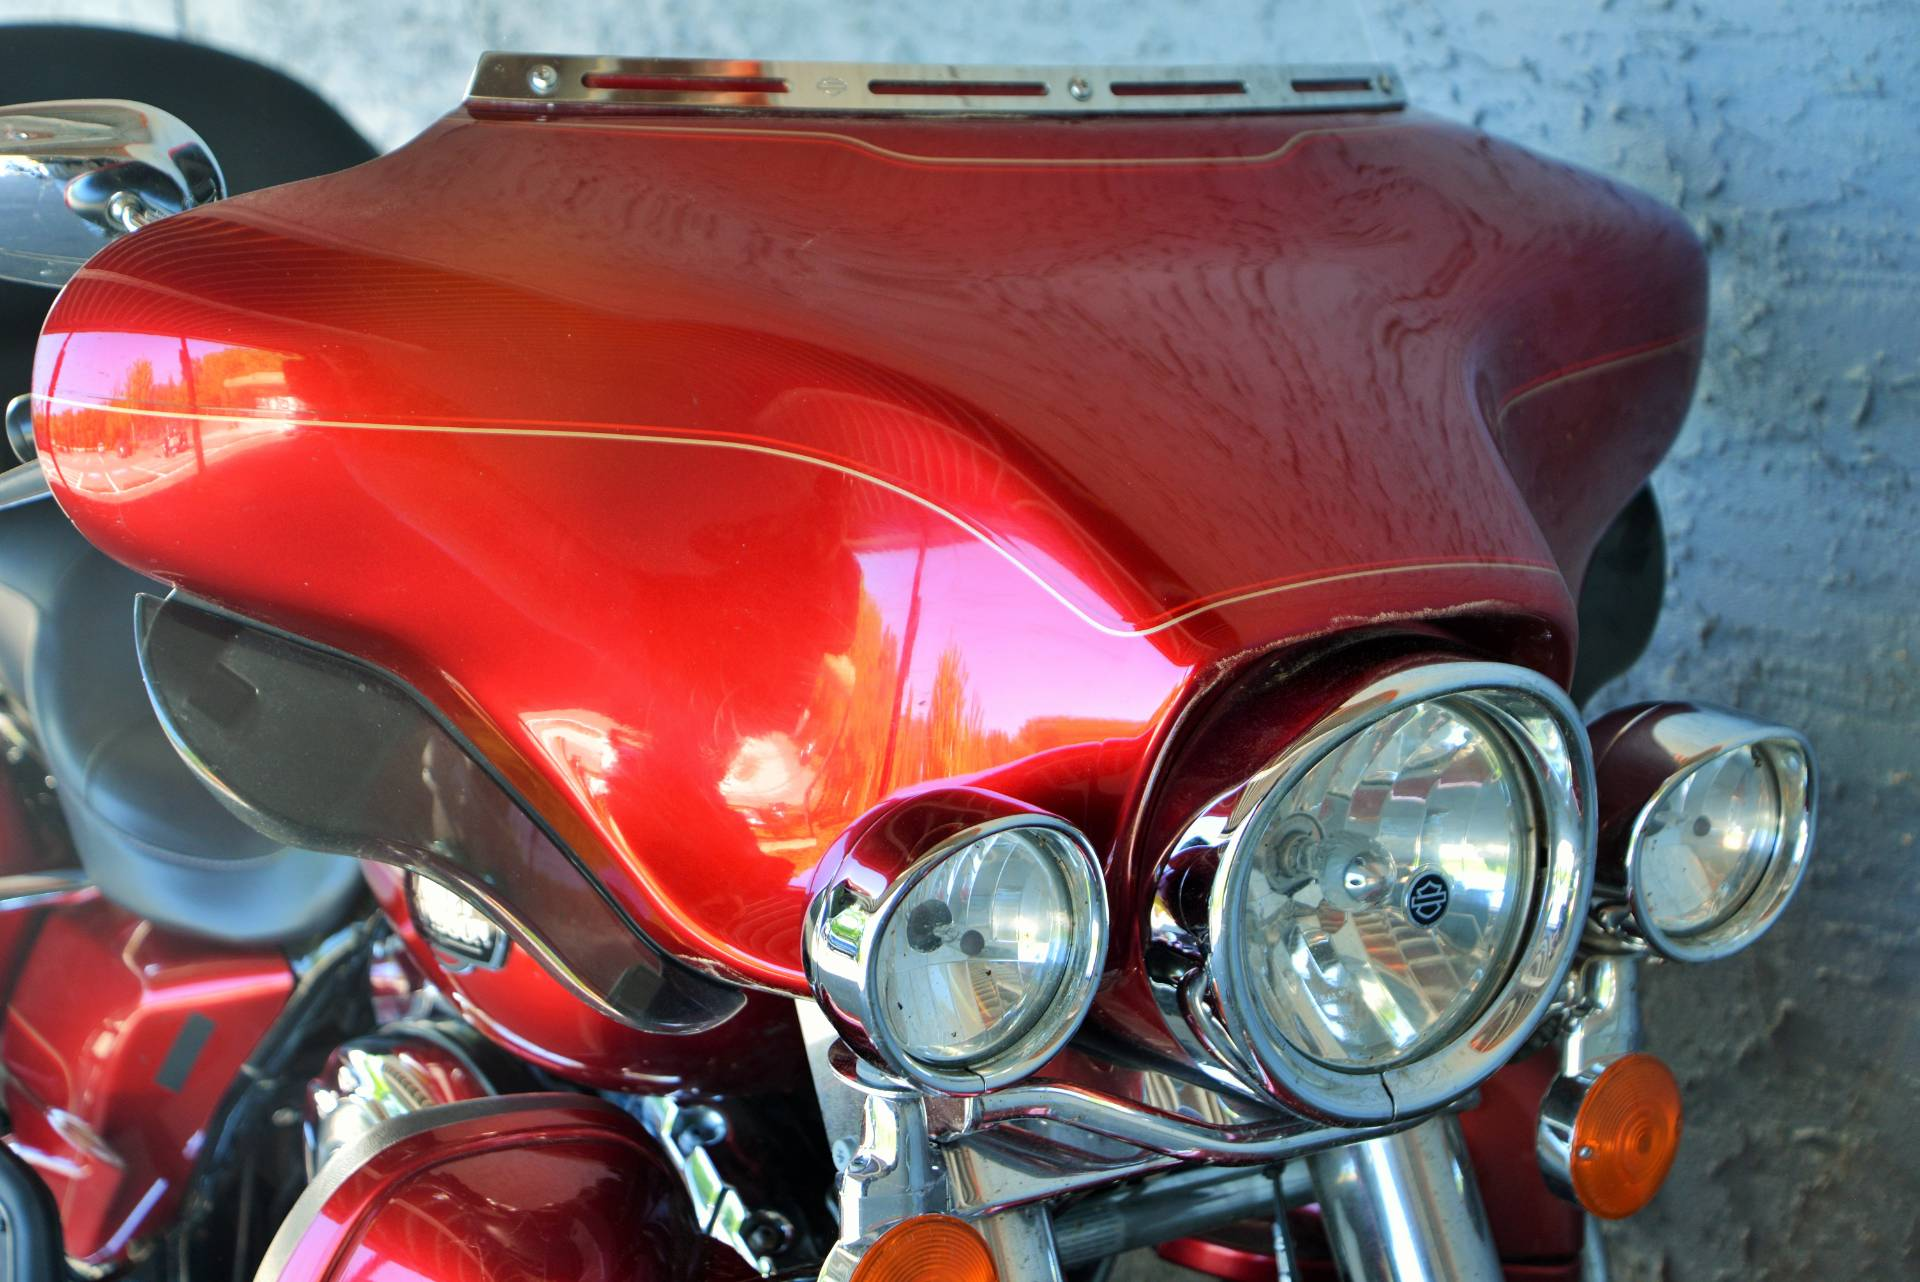 2012 Harley-Davidson ELECTRA GLIDE ULTRA in Lakewood, New Jersey - Photo 5